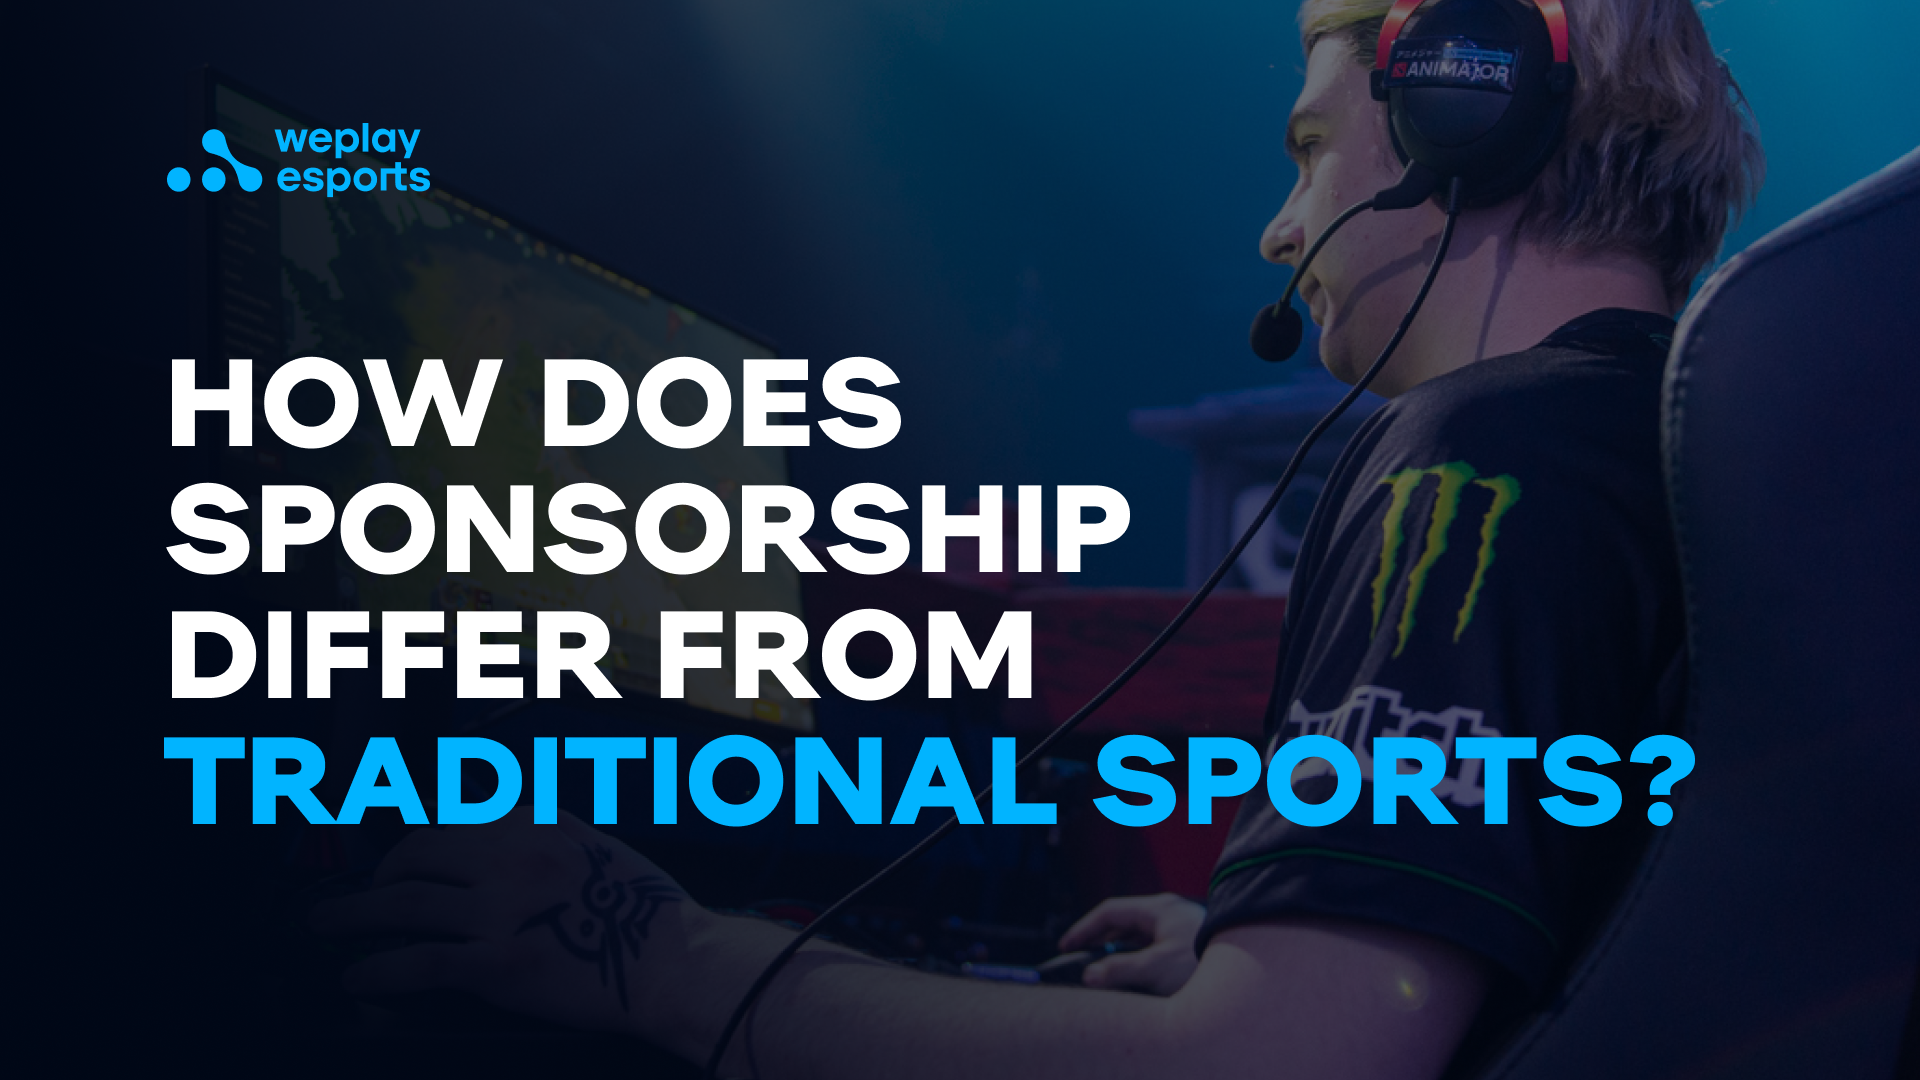 How does sponsorship differ from traditional sports?